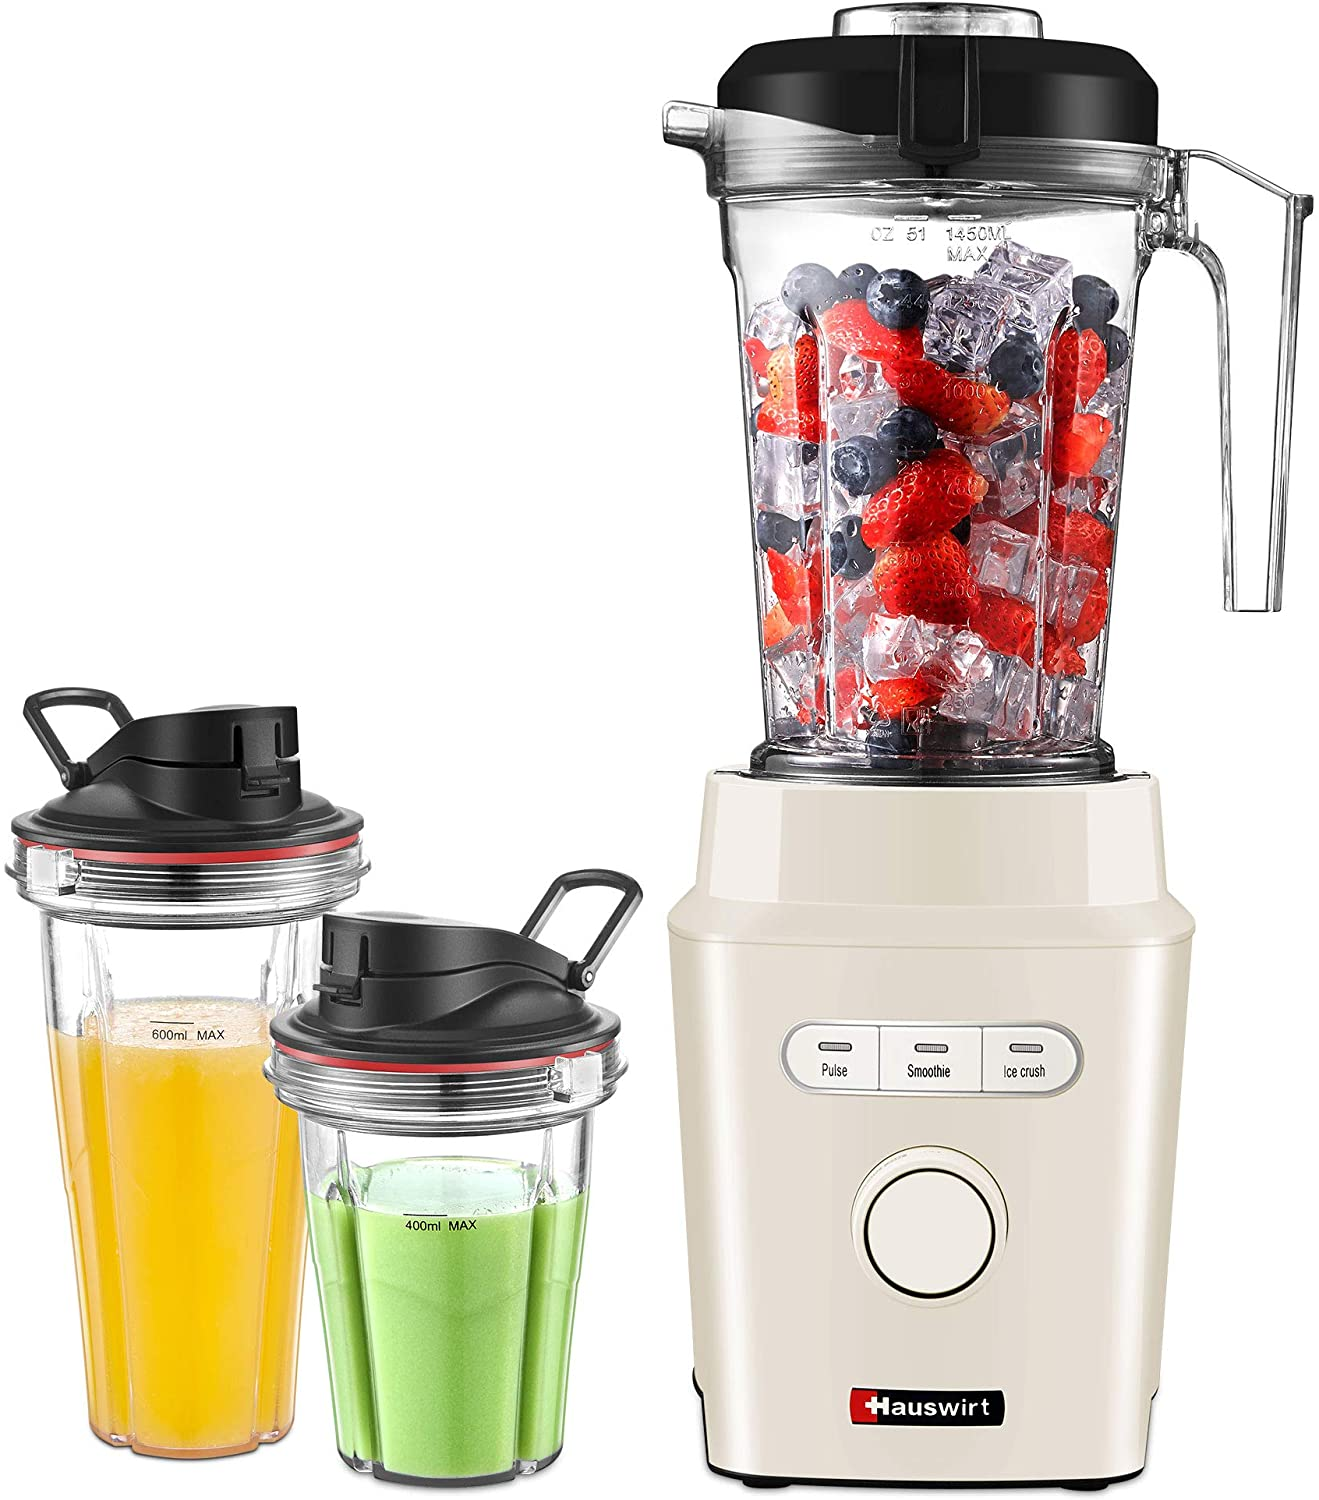 Hauswirt 1200W High Speed Blender with 51 Oz Pitcher, 25 Oz, 16 Oz To-go Cups for Personal and Family Serving, Powerful Professional Countertop Kitchen Food Mixer For Ice Frozen Fruit Crushing, Nuts Butter, Shakes and Smoothies - Metal Body